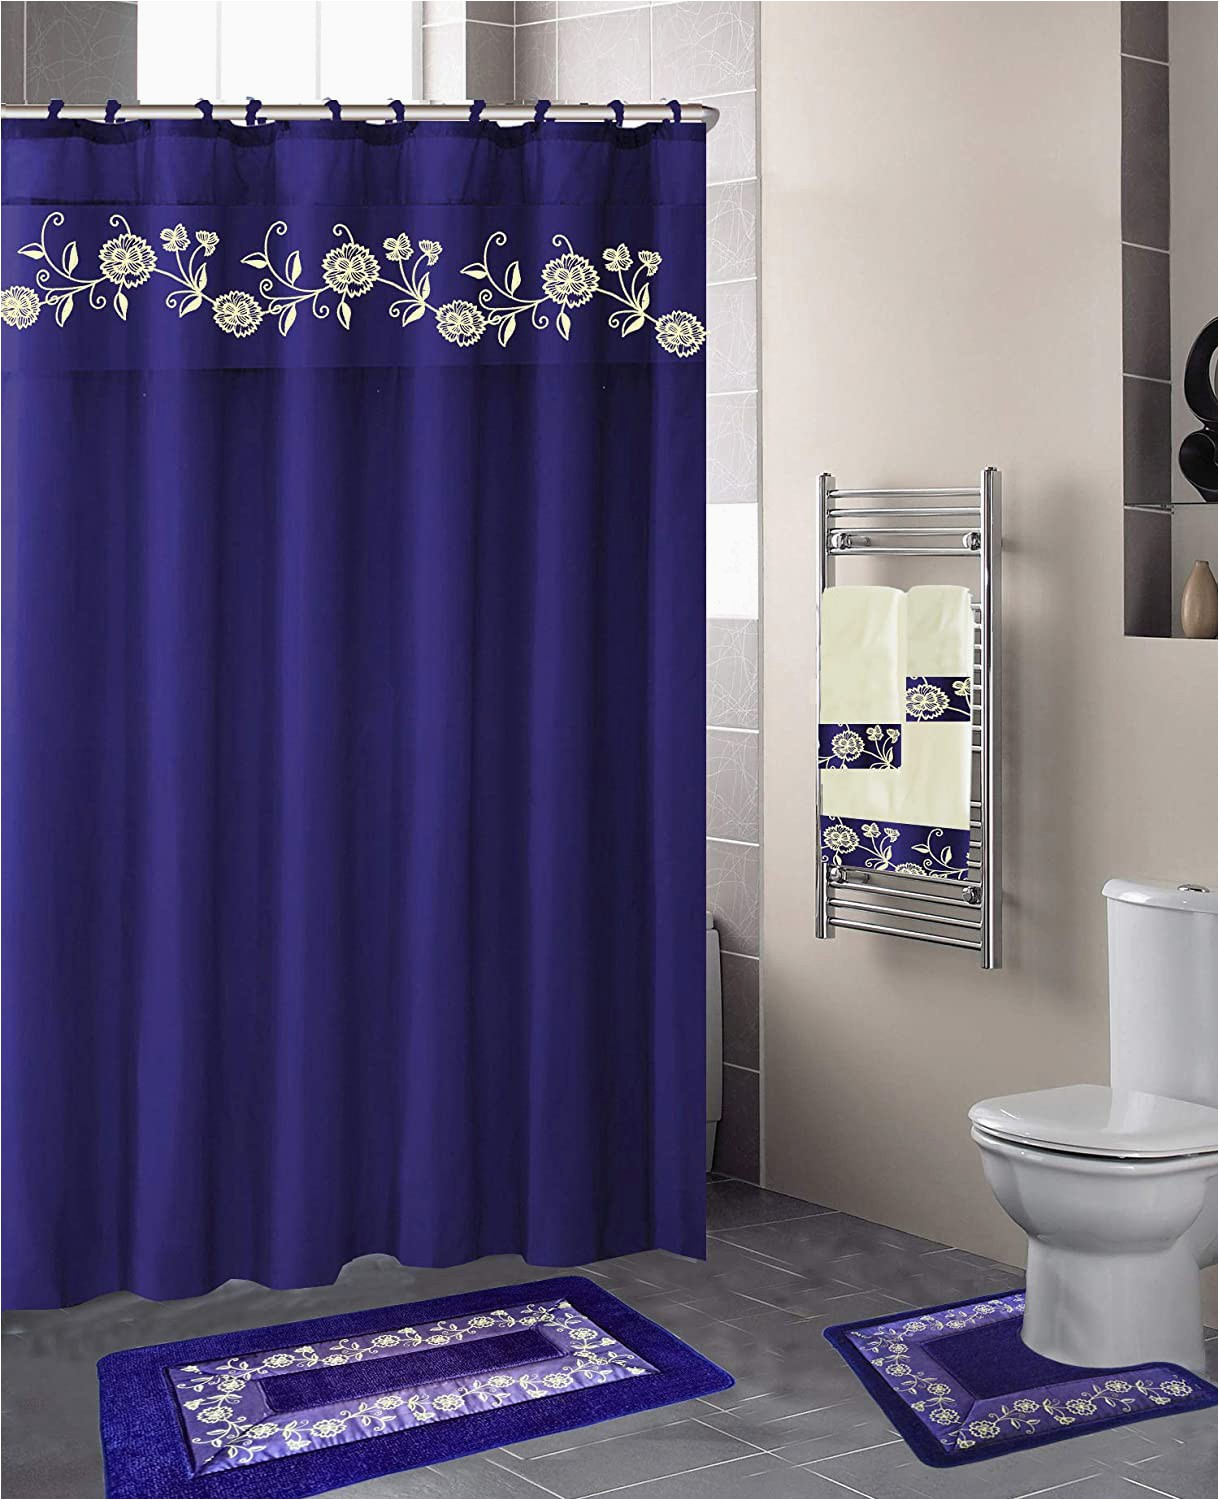 Royal Blue Bathroom Rug Set Luxury Home Collection 18 Pc Bath Rug Set Embroidery Non Slip Bathroom Rug Mats and Rug Contour and Shower Curtain and towels and Rings Hooks and